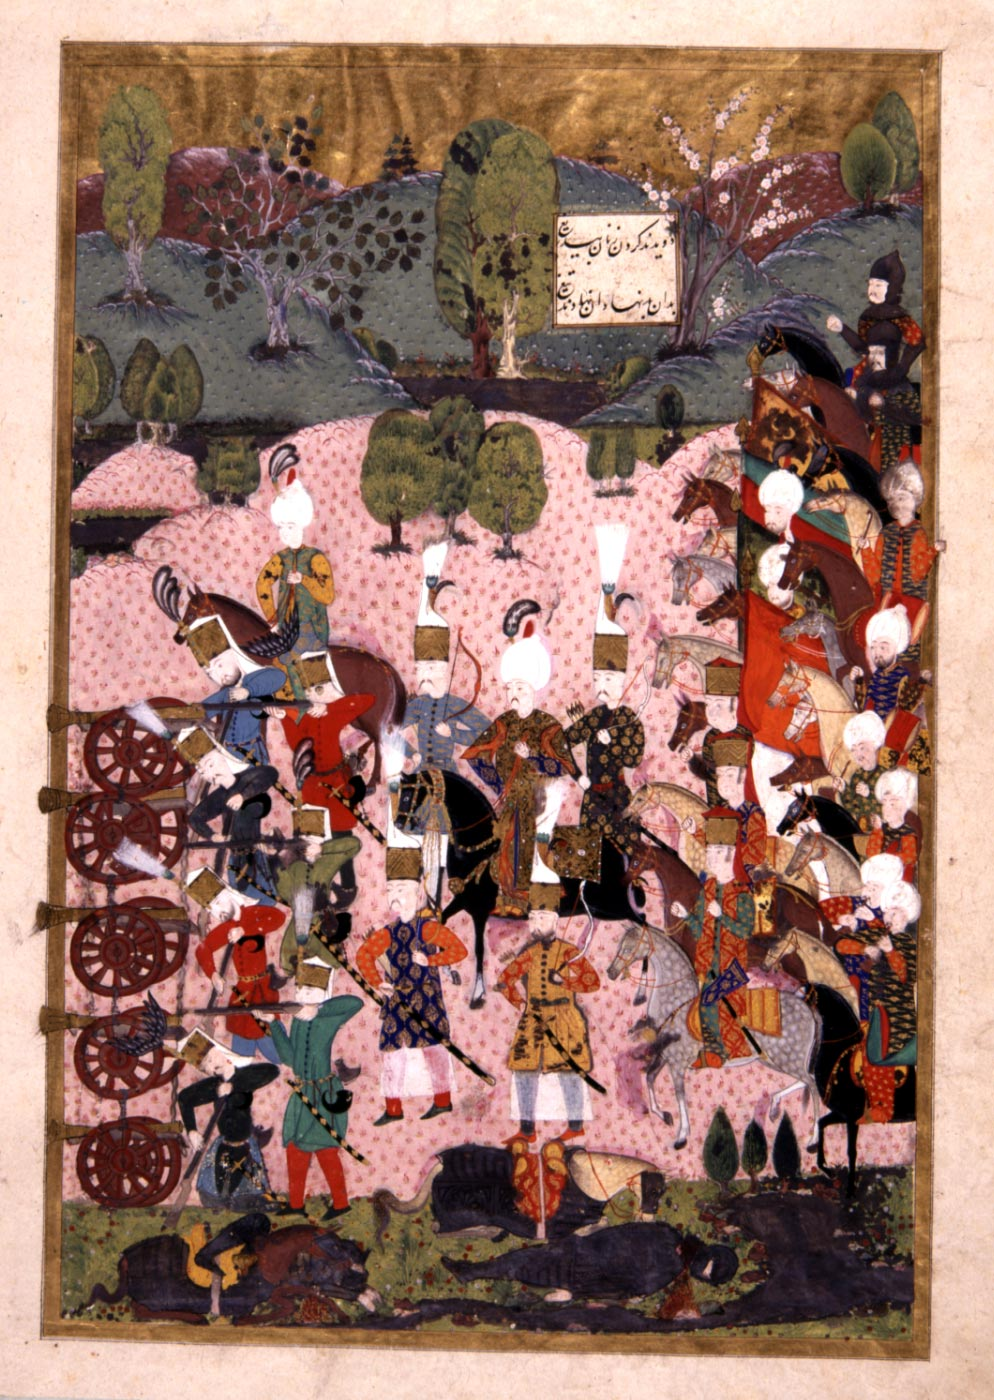 suleymanname1526-sultan_suleiman_during_the_battle_of_mohacs-suleymanname.jpg